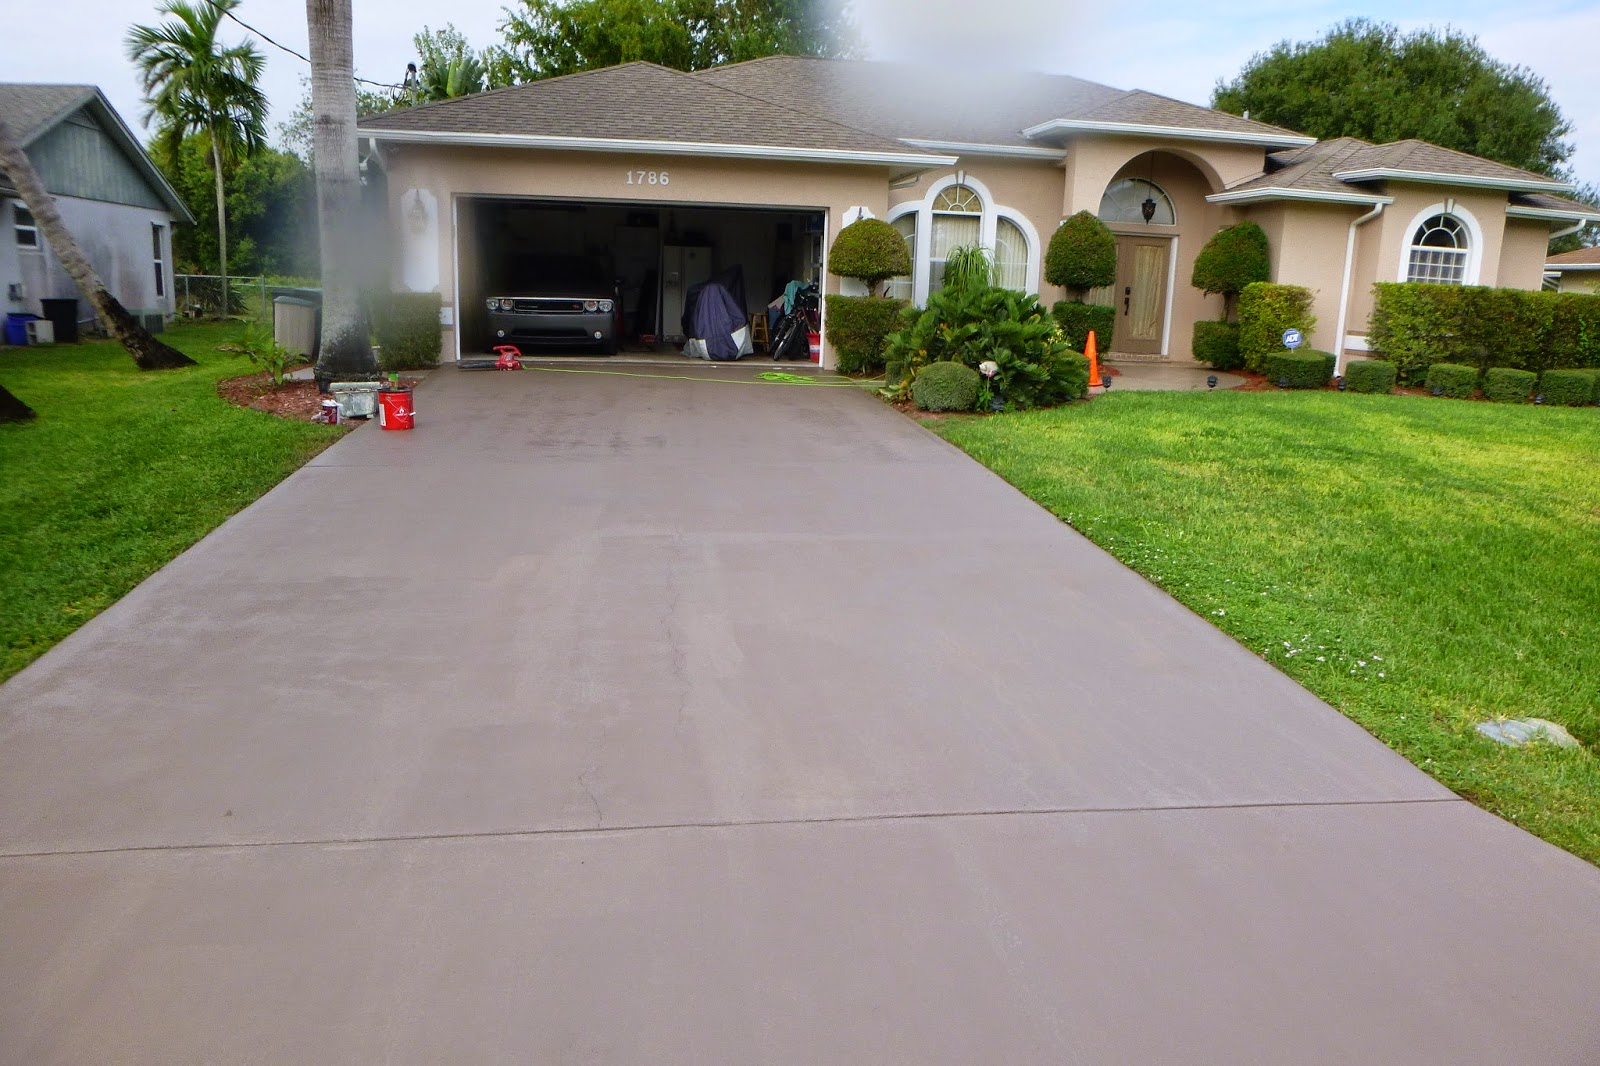 Painting artists corp painting company port st lucie fl for New driveway ideas